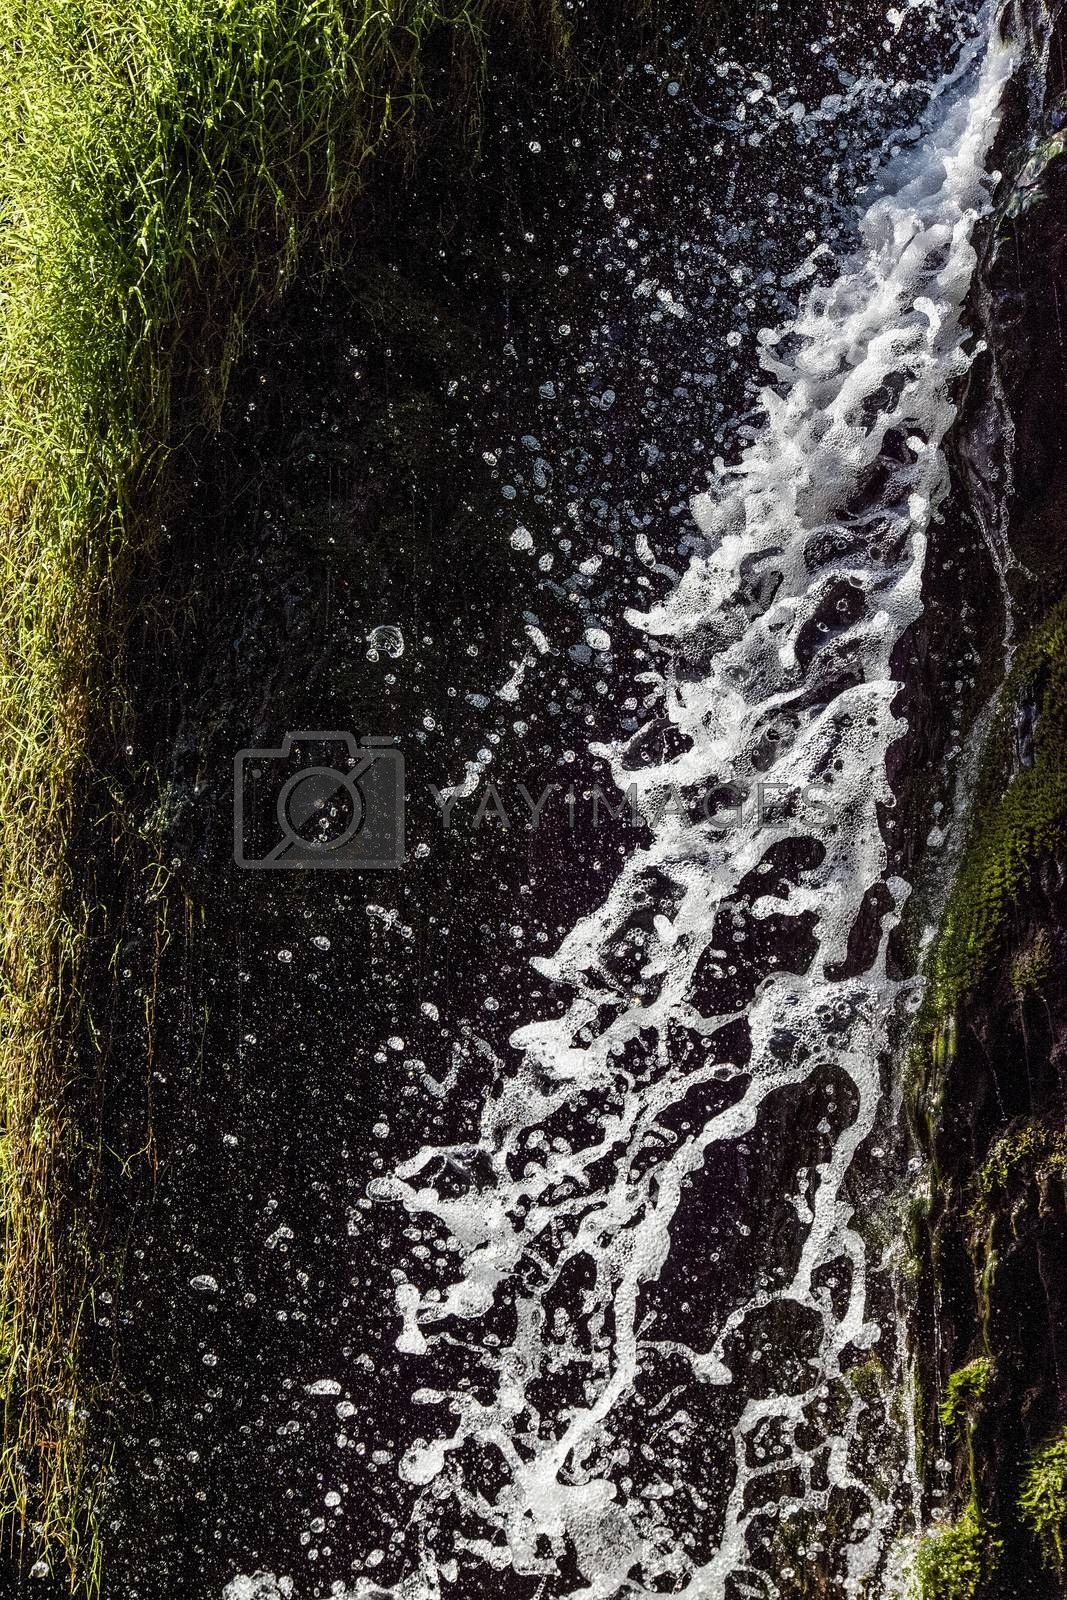 Fresh sparkling water falling over green moss of a beautiful waterfall. Vertical image.